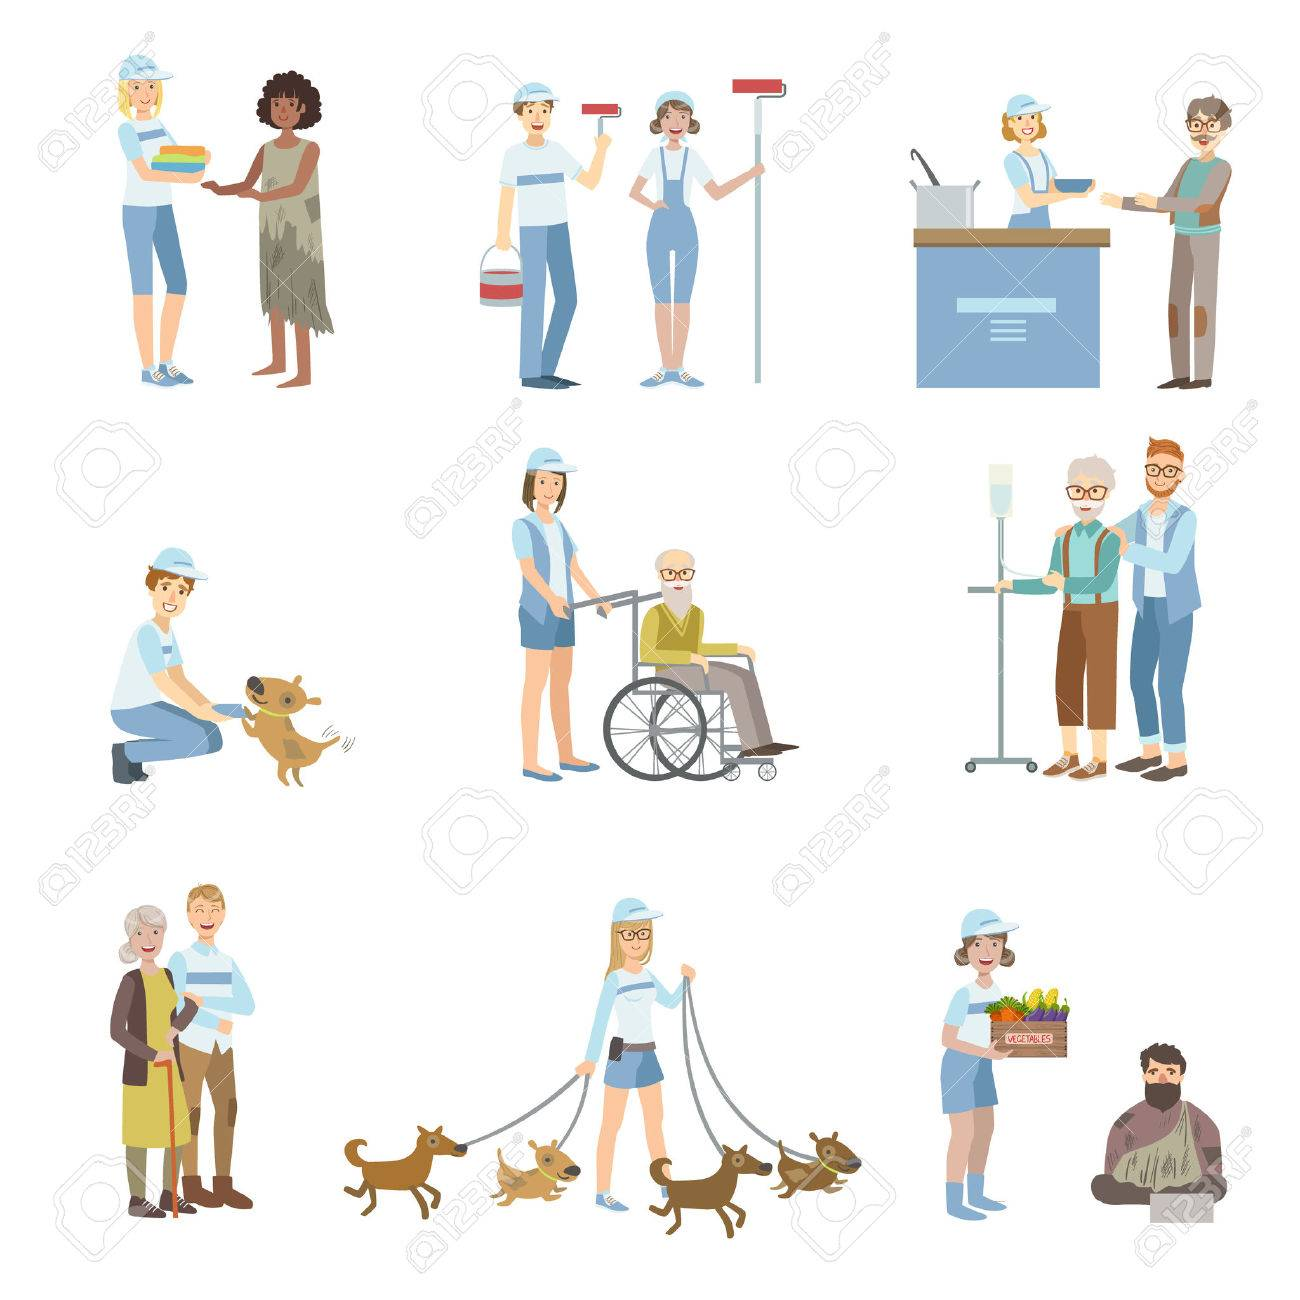 Volunteers Helping In Different Situations Illustrations Isolated On White Background. Simplified Cartoon Characters Set - 61245382